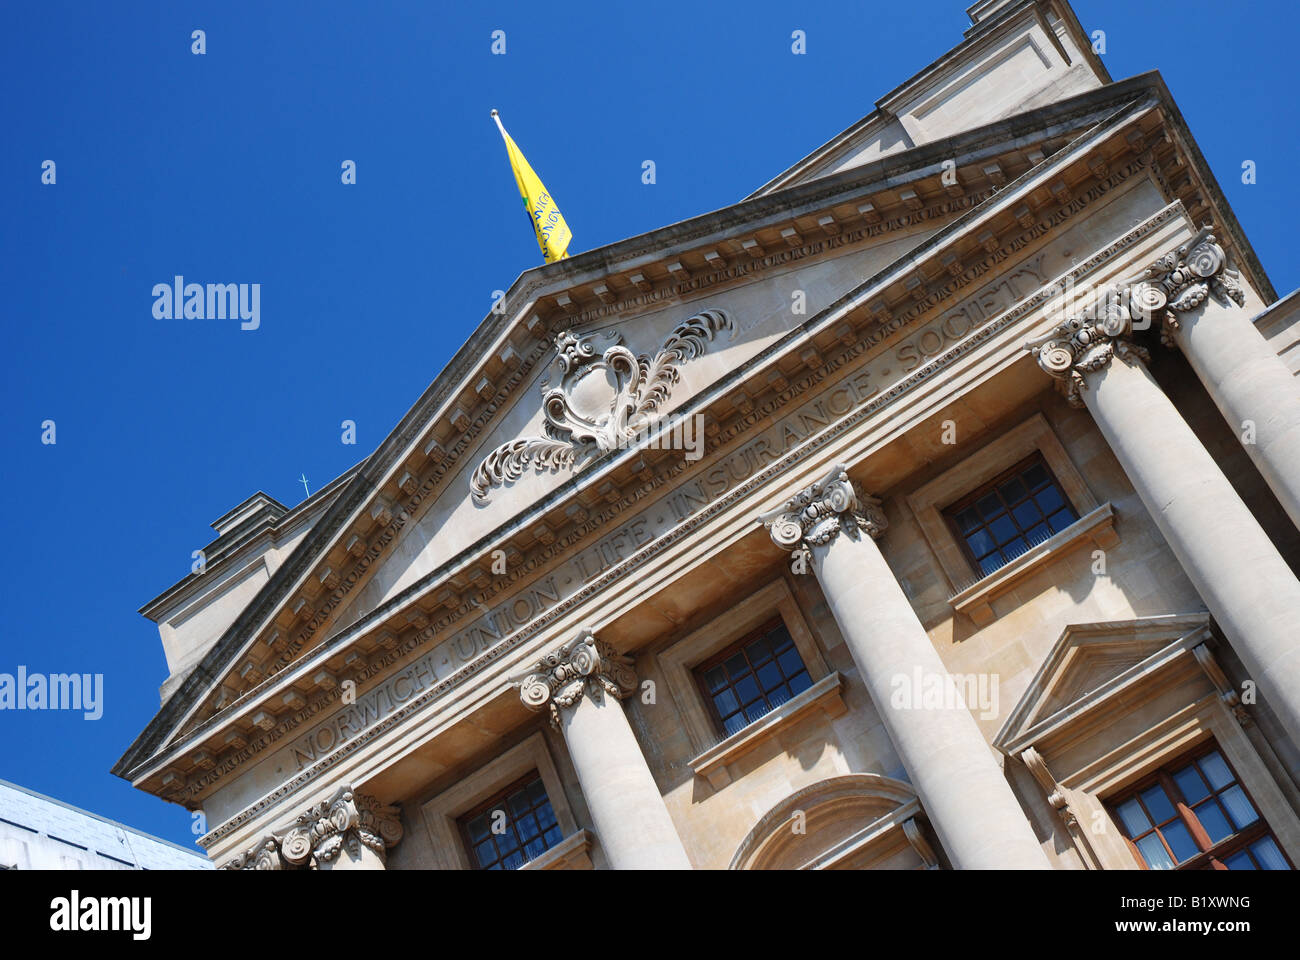 Surrey House/Marble Hall, Norwich Union HQ, England - Stock Image